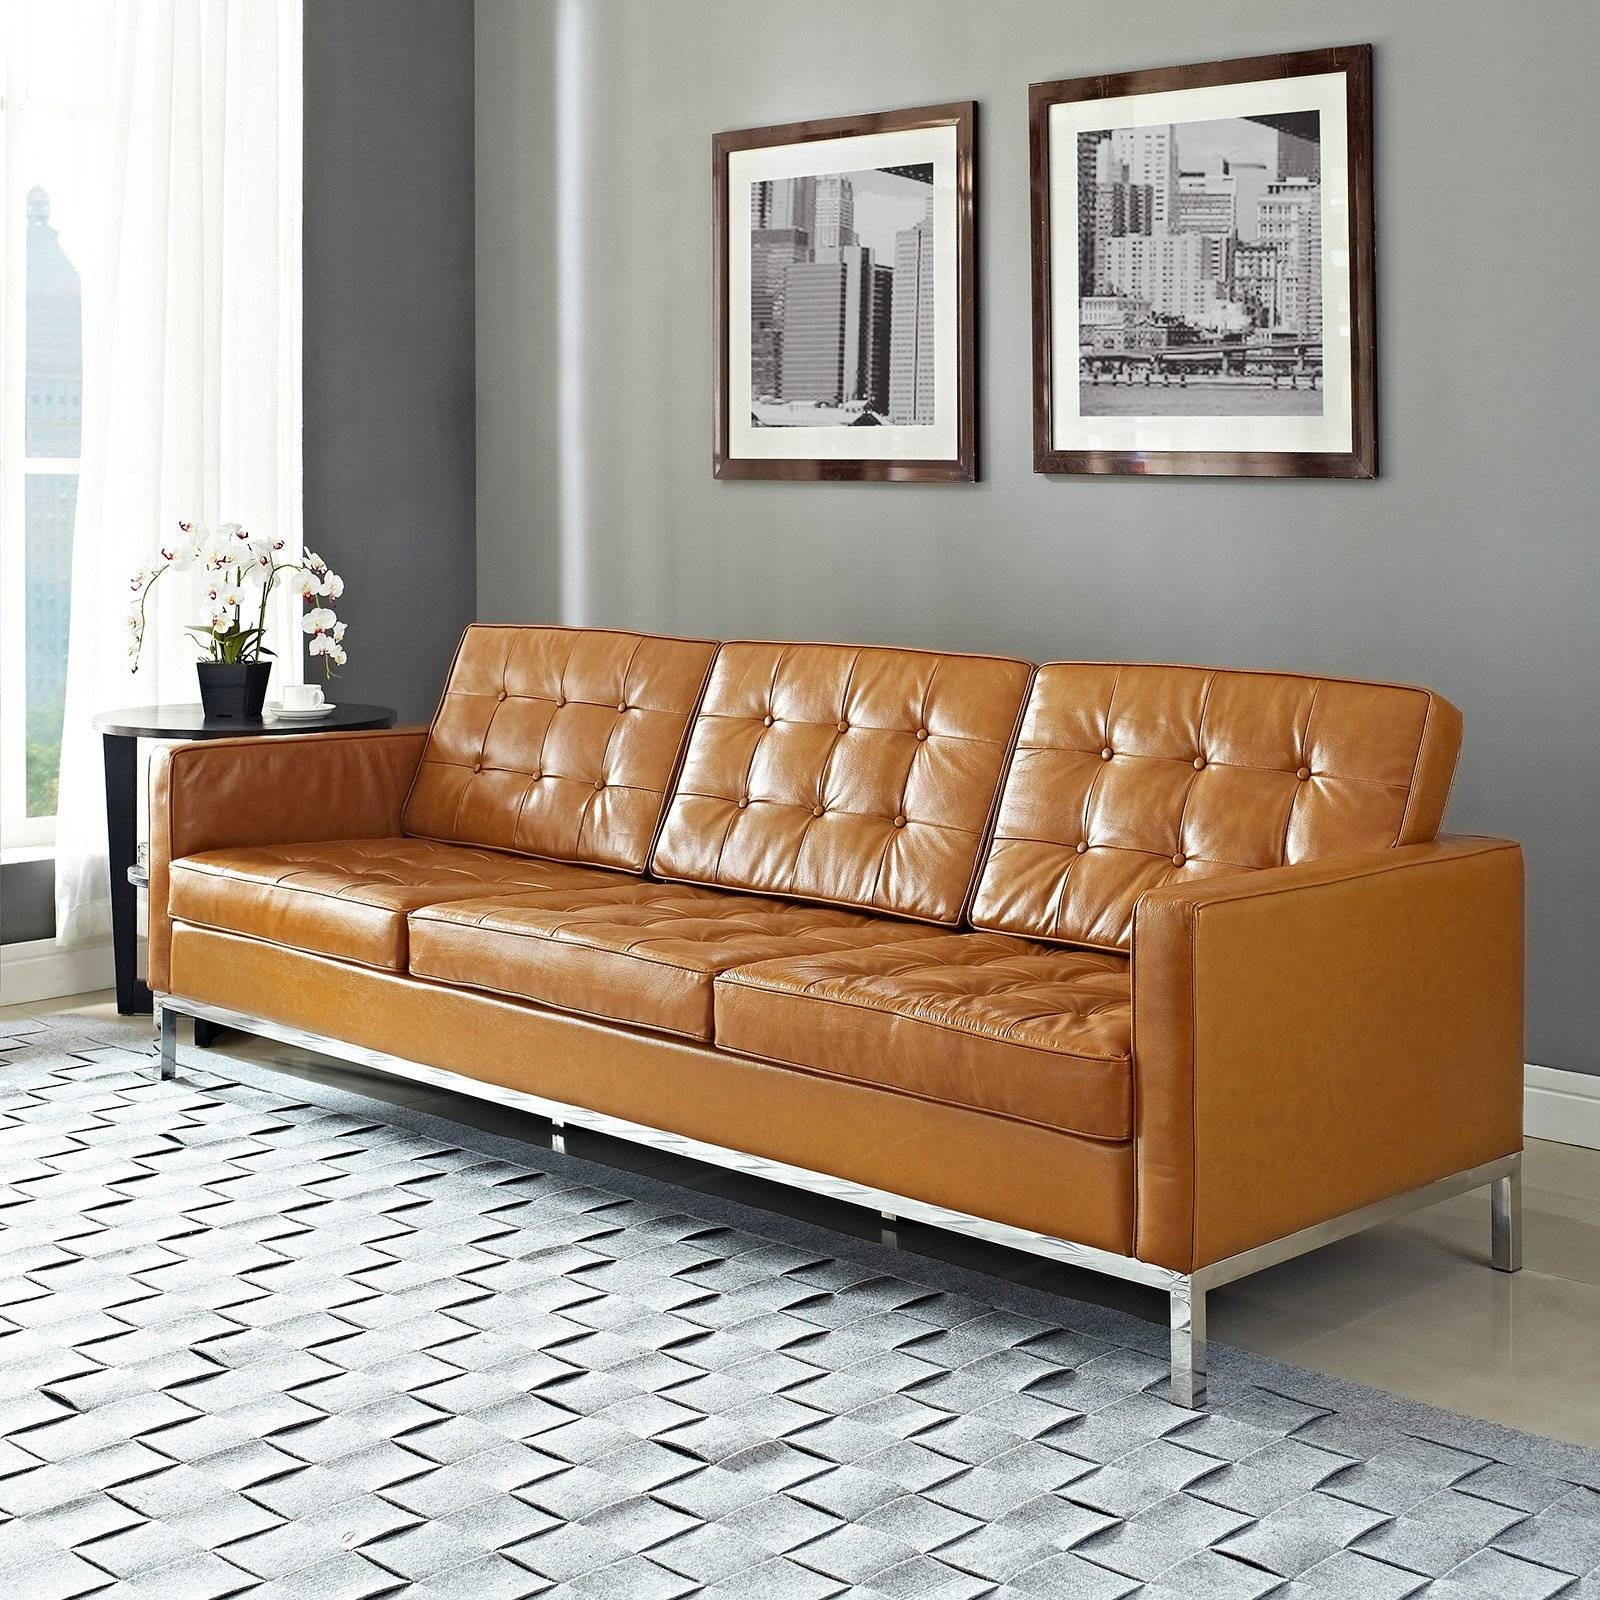 Modway Loft Leather Sofa | Hayneedle within Carmel Leather Sofas (Image 11 of 15)